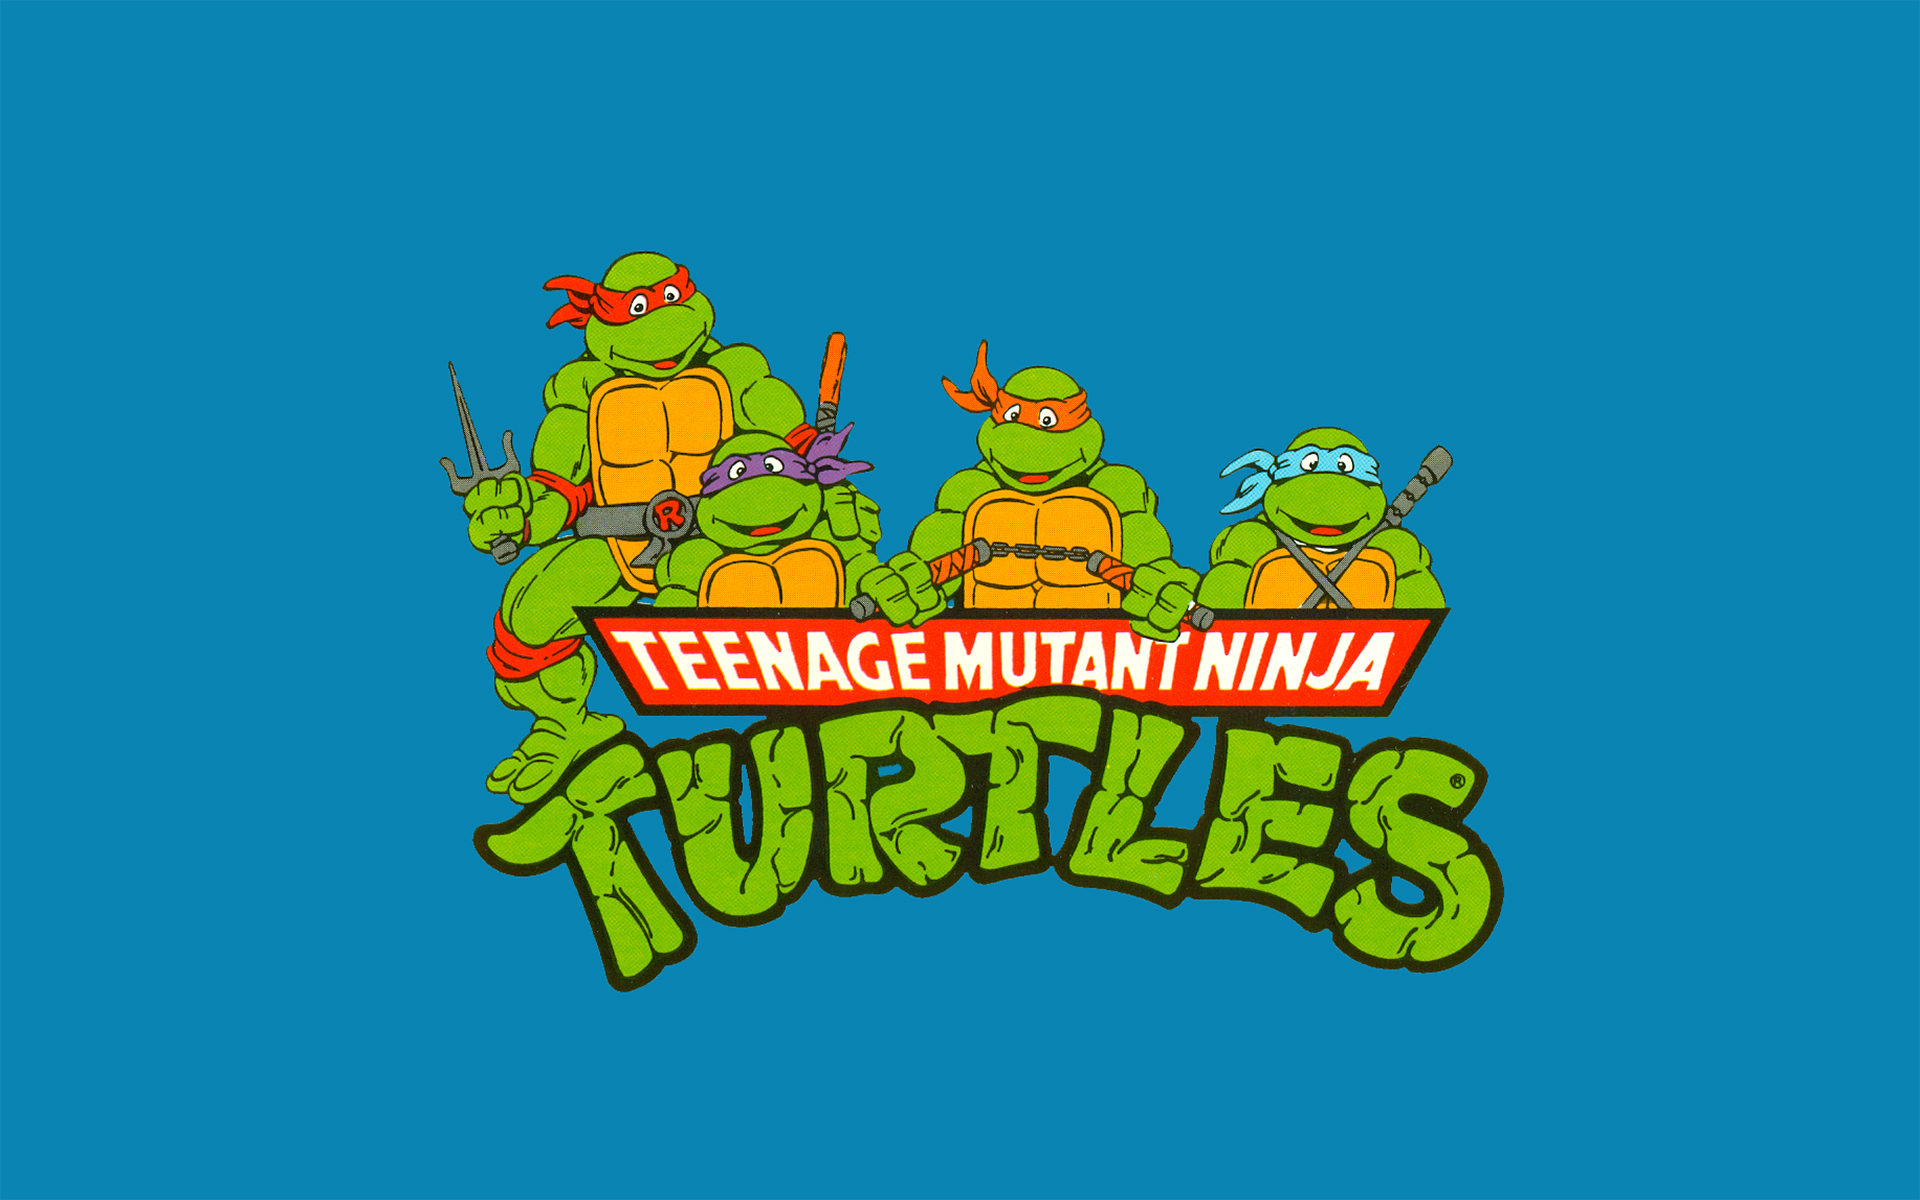 teenage mutant ninja turtles wallpaper (38 wallpapers) – adorable